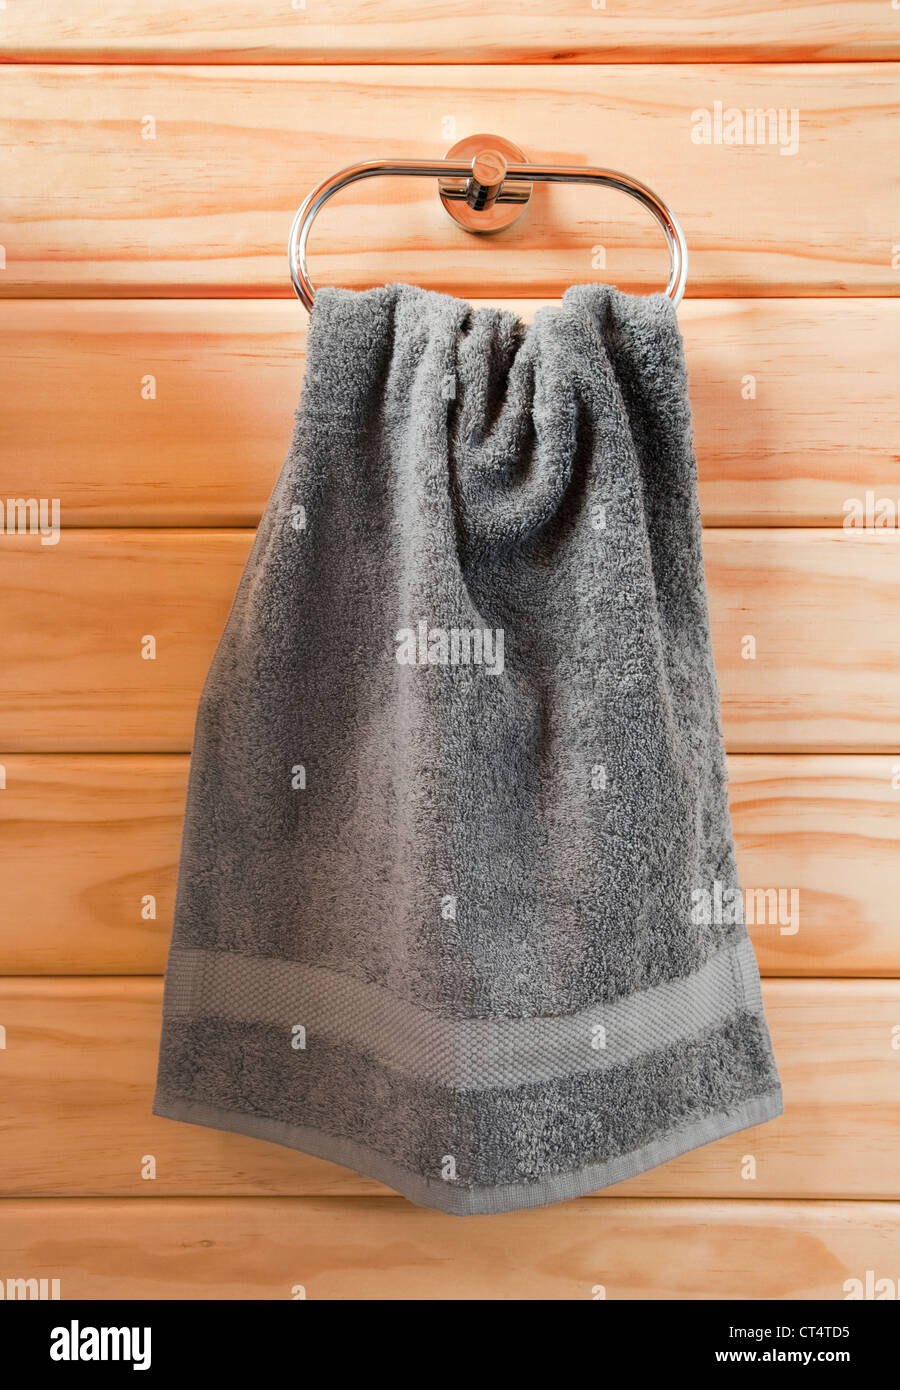 Grey hand towel hanging on chrome towel ring, against a timber wall. - Stock Image